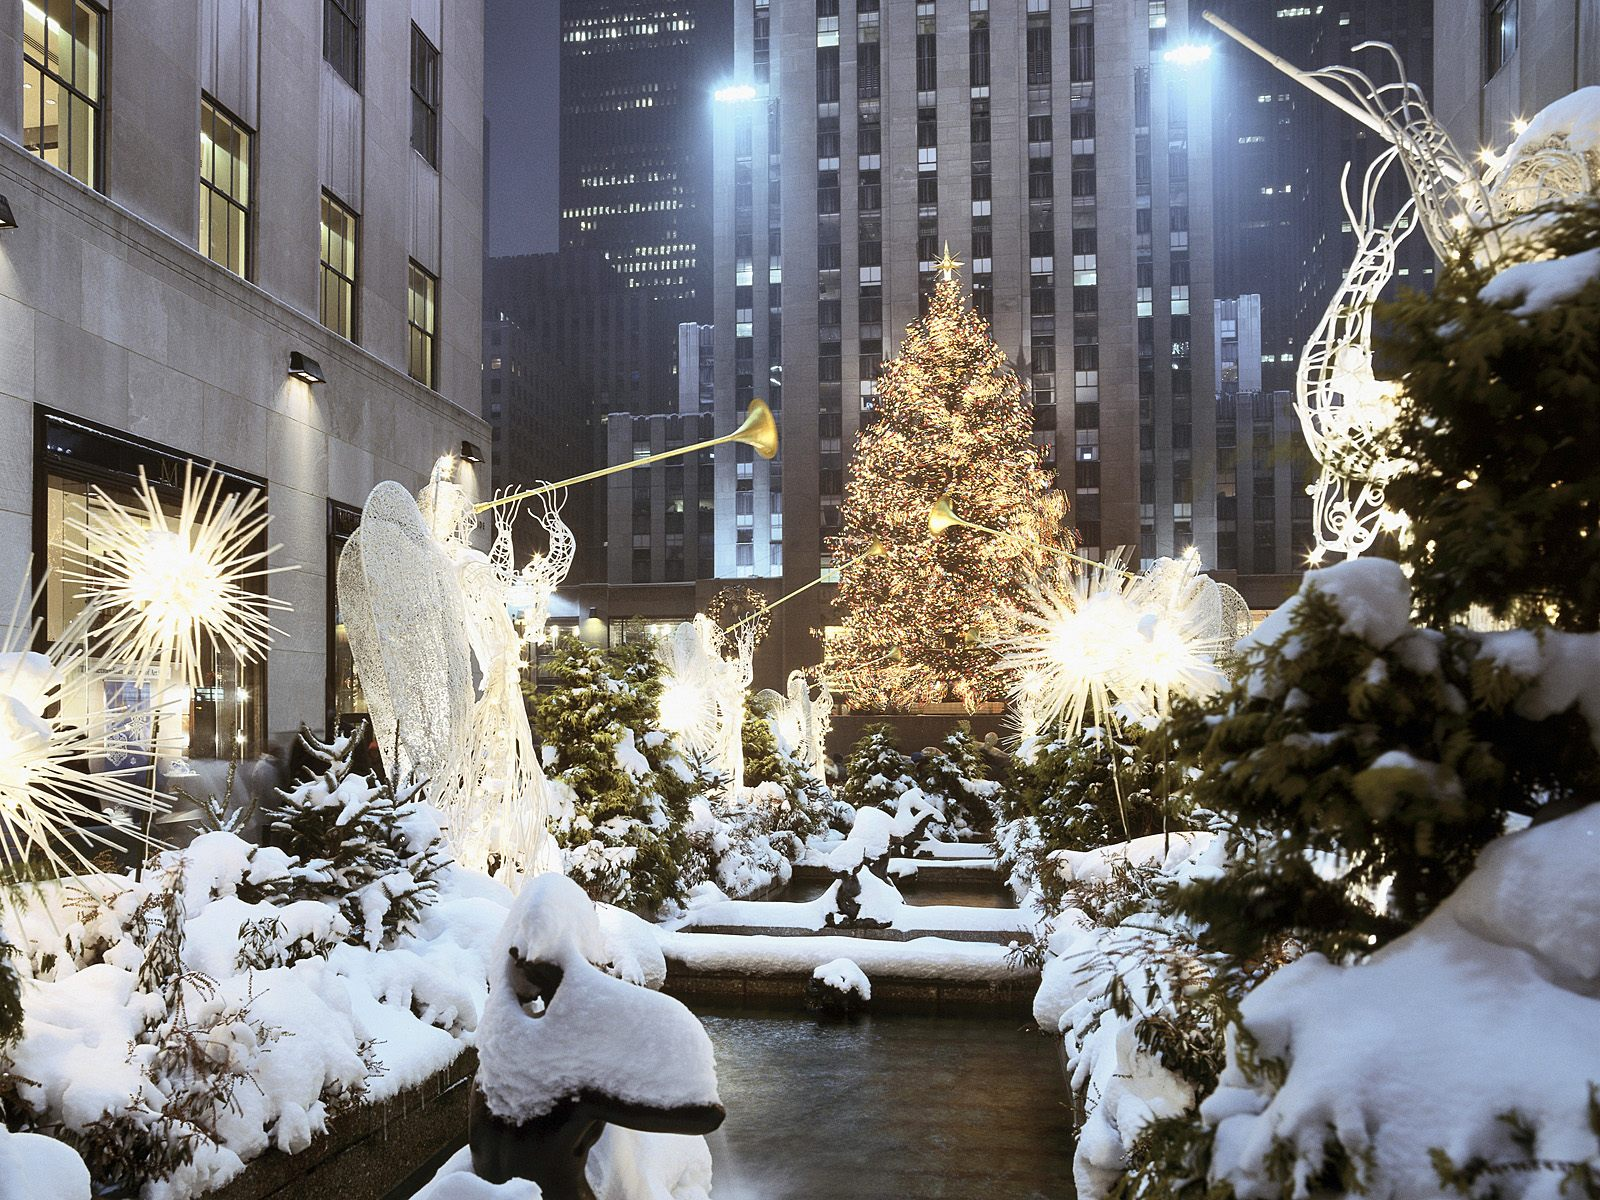 Traveler Guide: 10 Best Cities To Celebrate Christmas